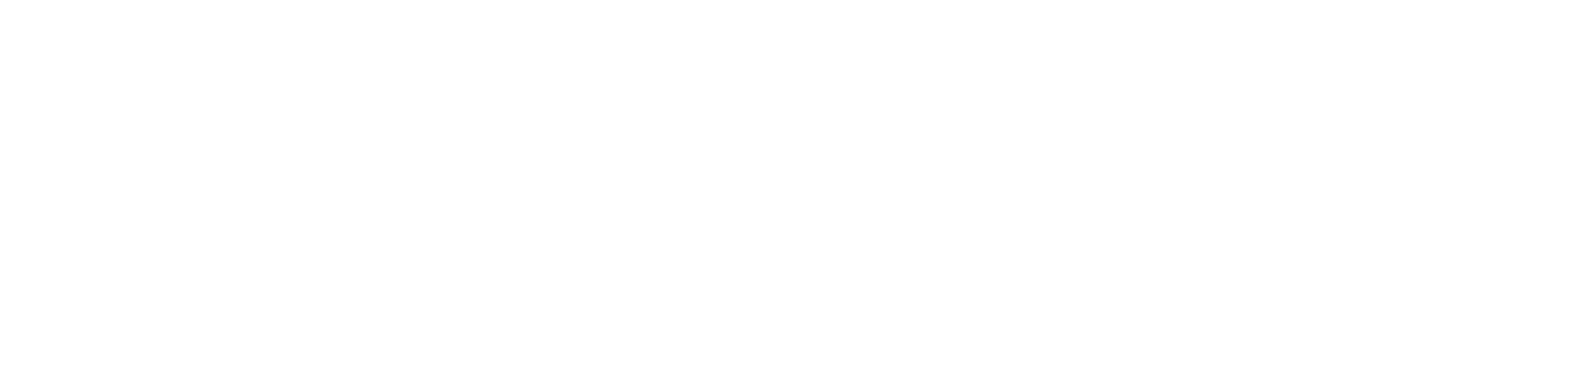 West River Travel Company